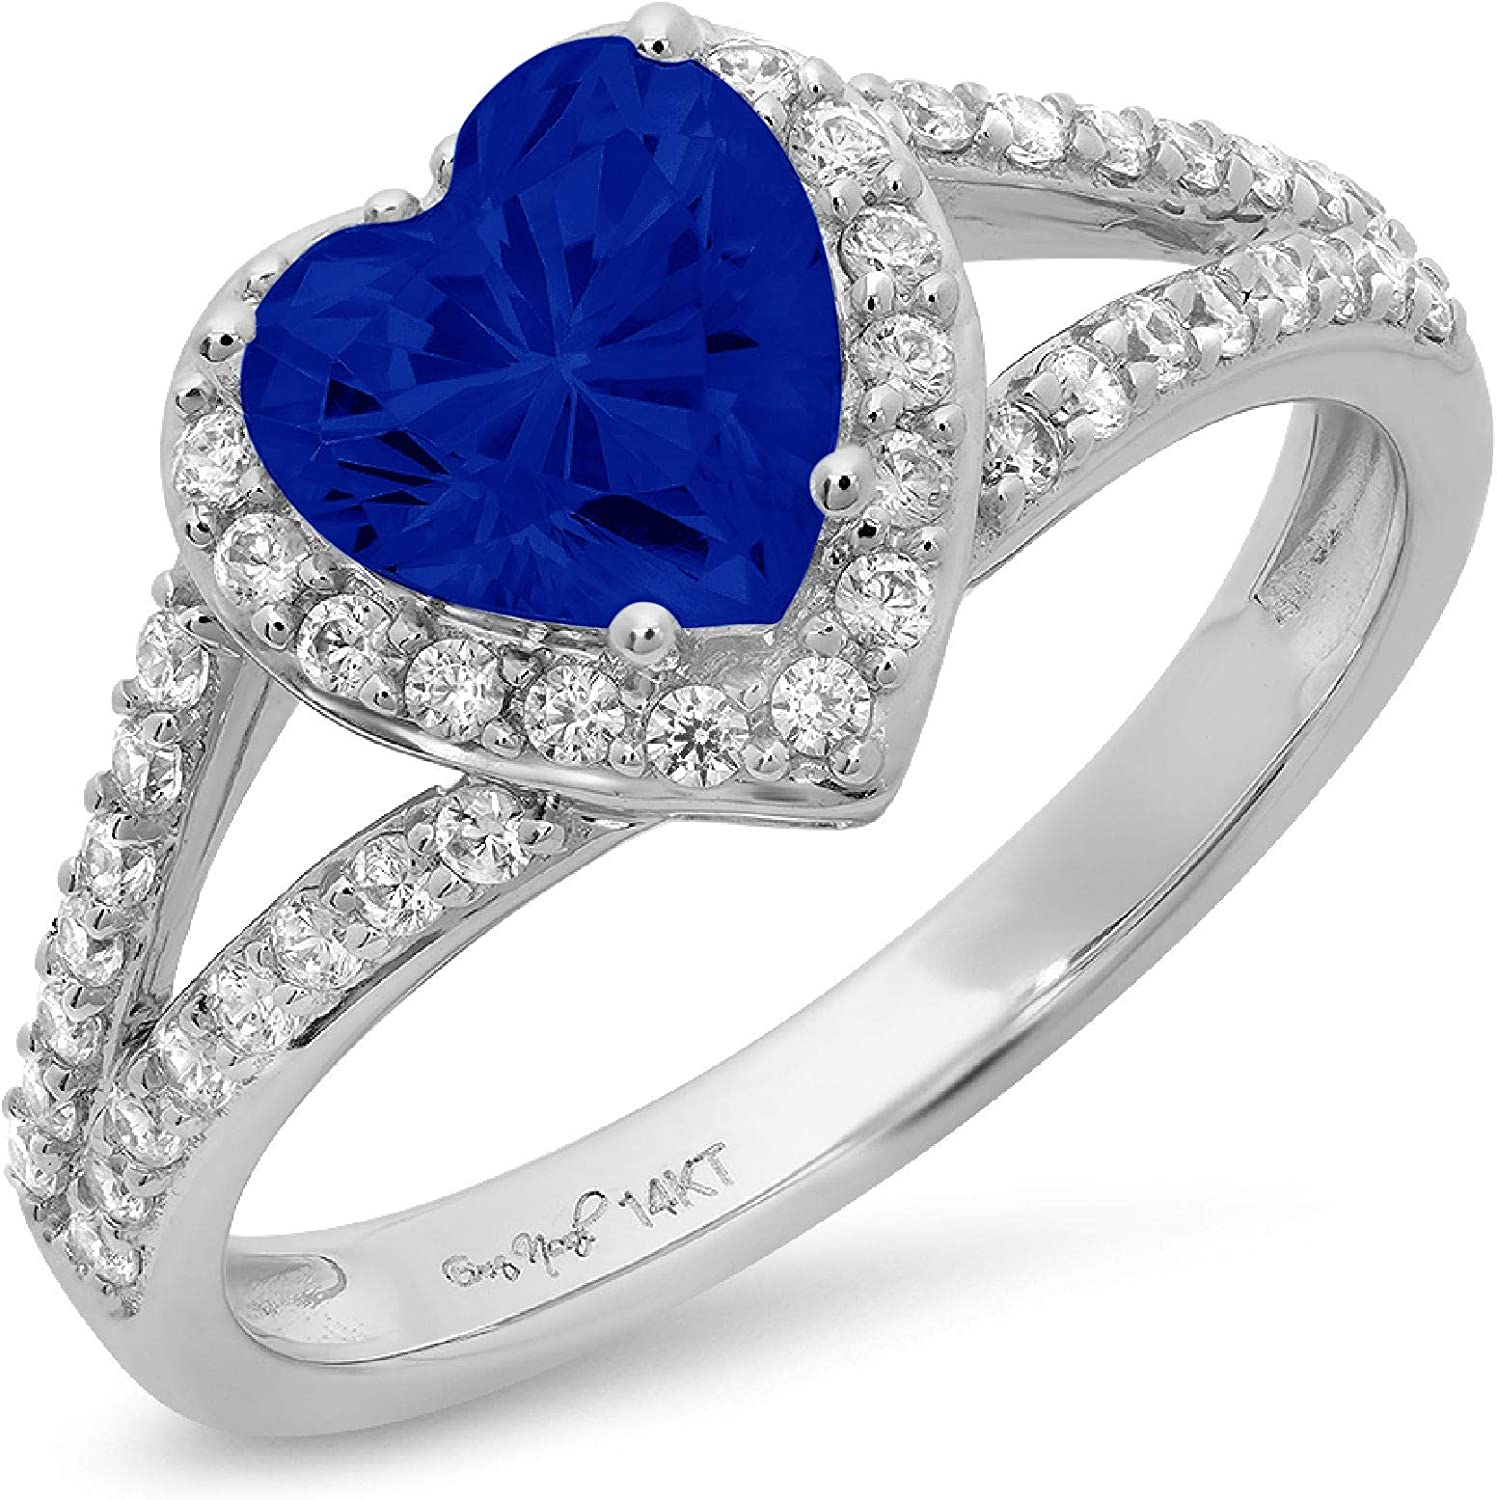 1.75 ct Heart Cut Solitaire Accent Halo split shank Genuine Flawless Simulated Blue Sapphire Gemstone Engagement Promise Statement Anniversary Bridal Wedding Ring Solid 18K White Gold